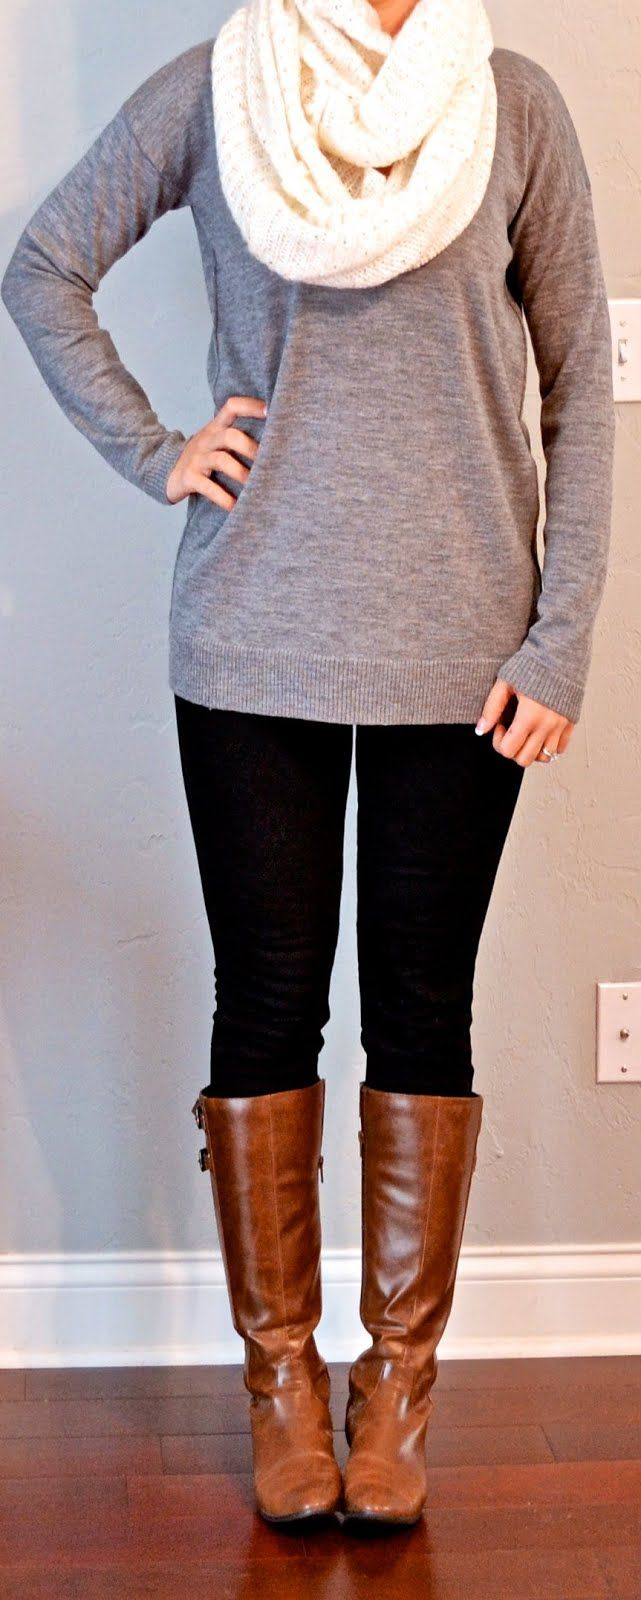 outfit post: grey tunic sweater, black skinny jeans, cream ...